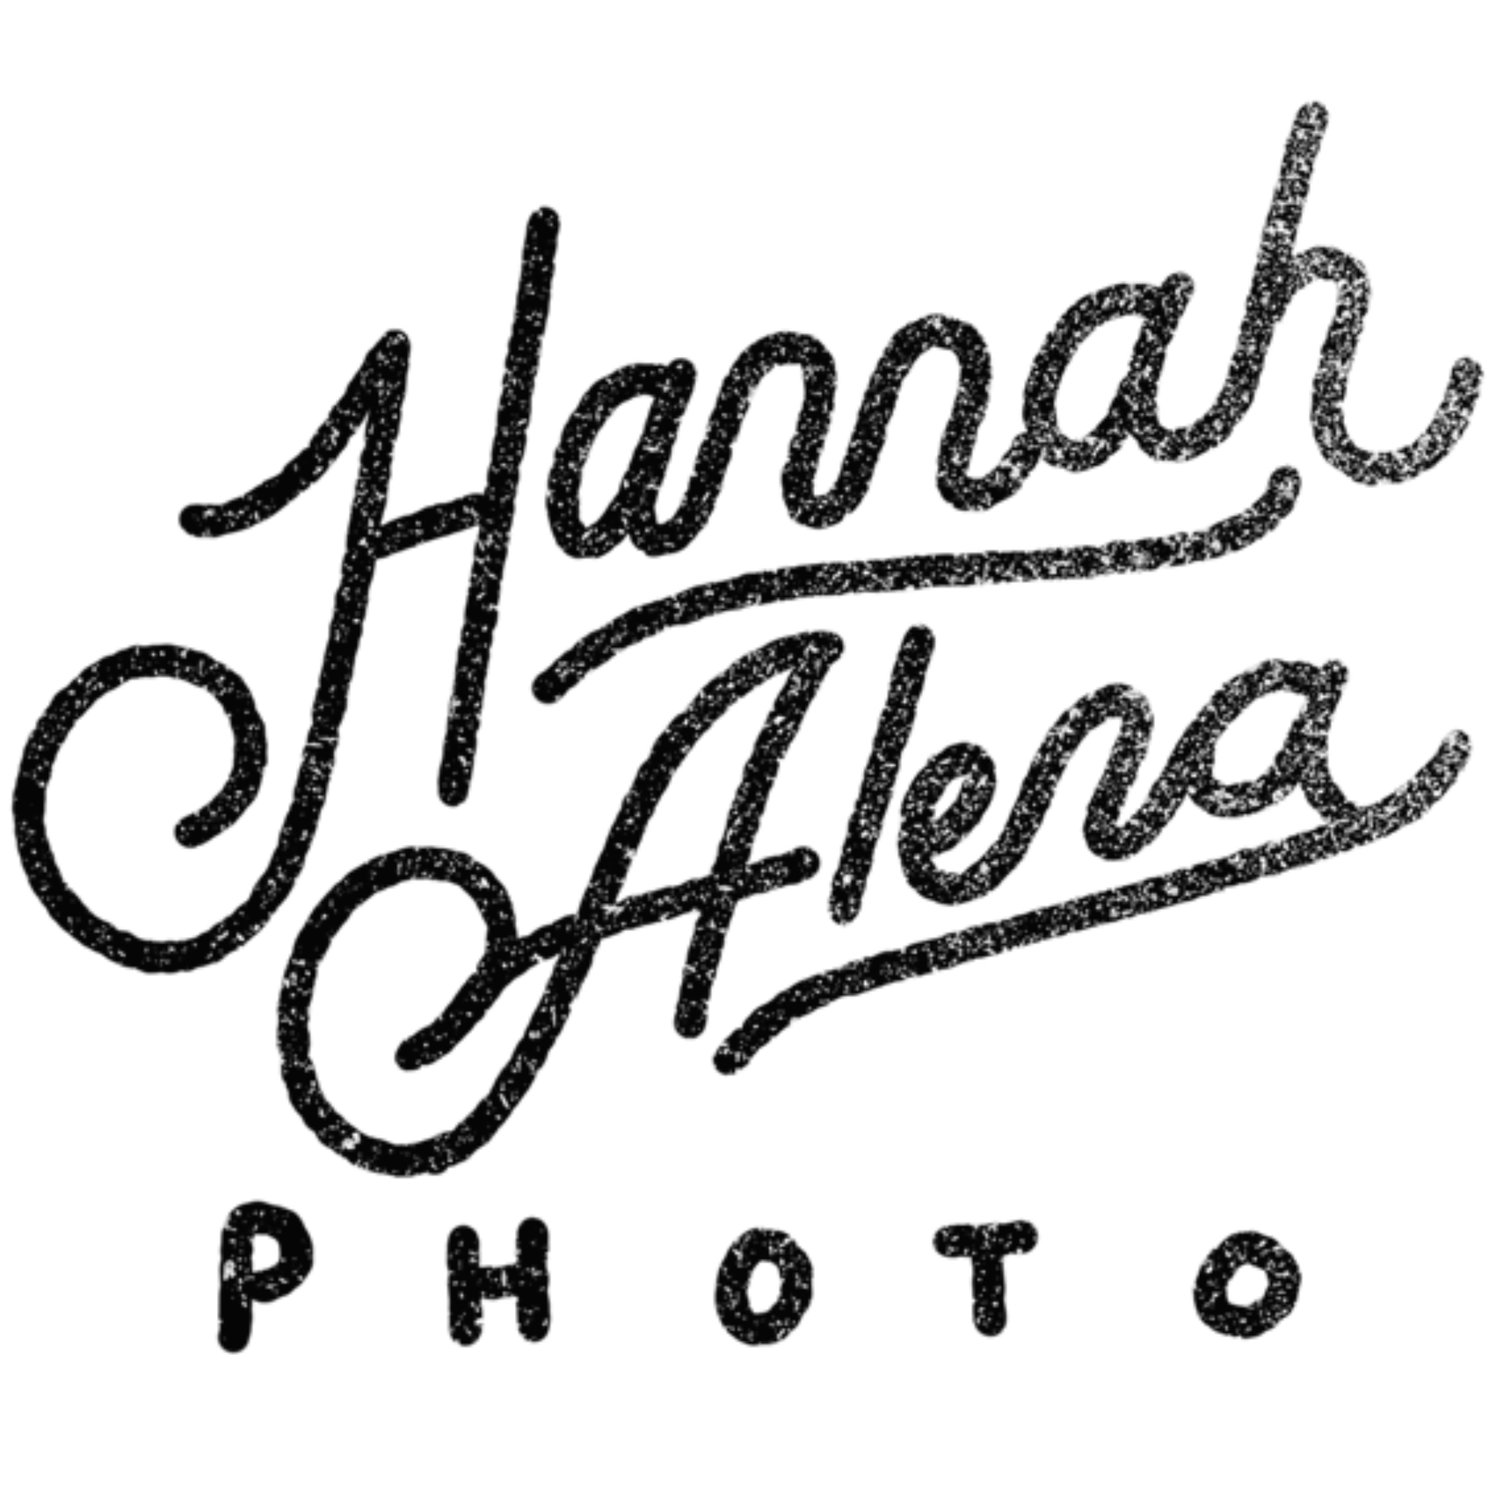 Hannah Alena Photography | Portland Oregon Wedding Photographer Destination elopement engagement adventure